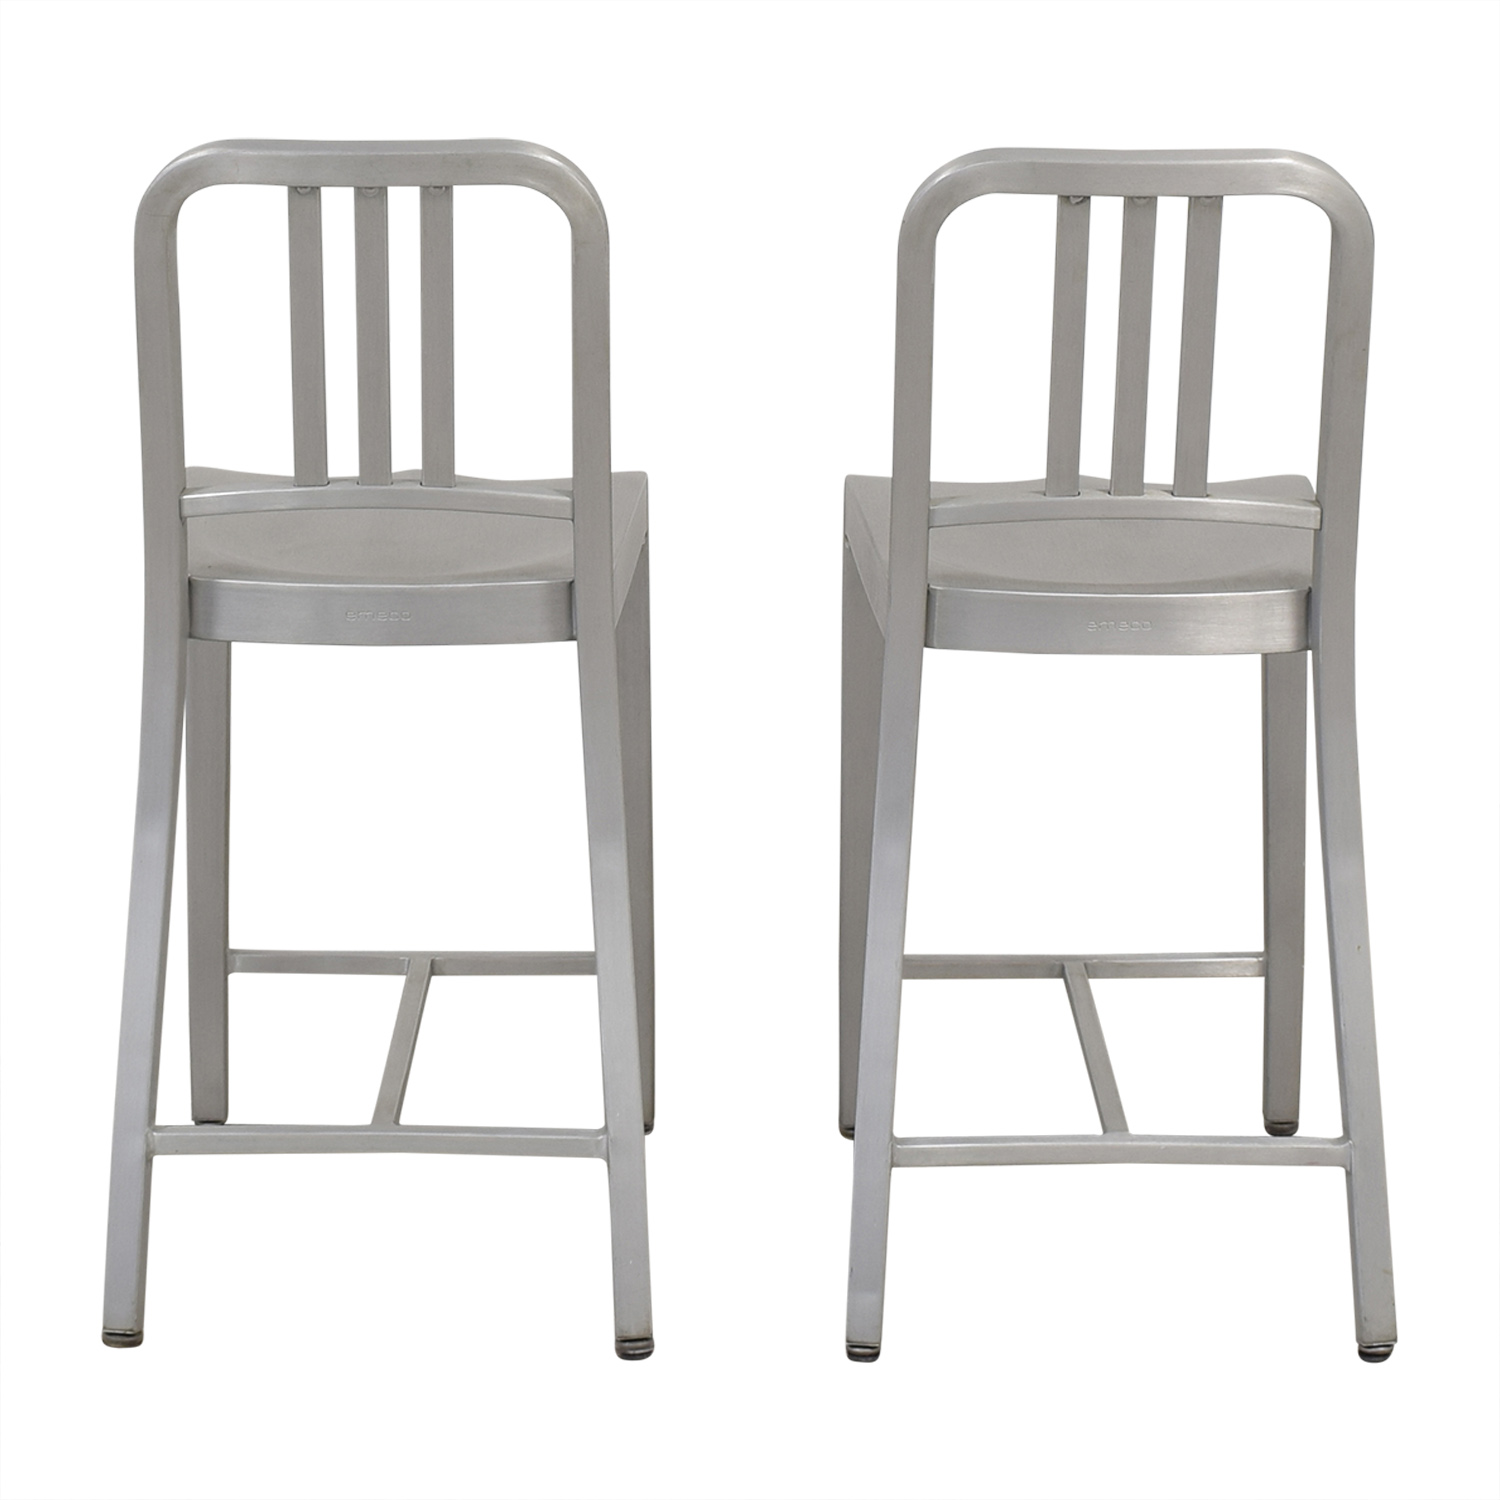 Cool 53 Off Design Within Reach Design Within Reach 1006 Navy Counter Stools Chairs Uwap Interior Chair Design Uwaporg